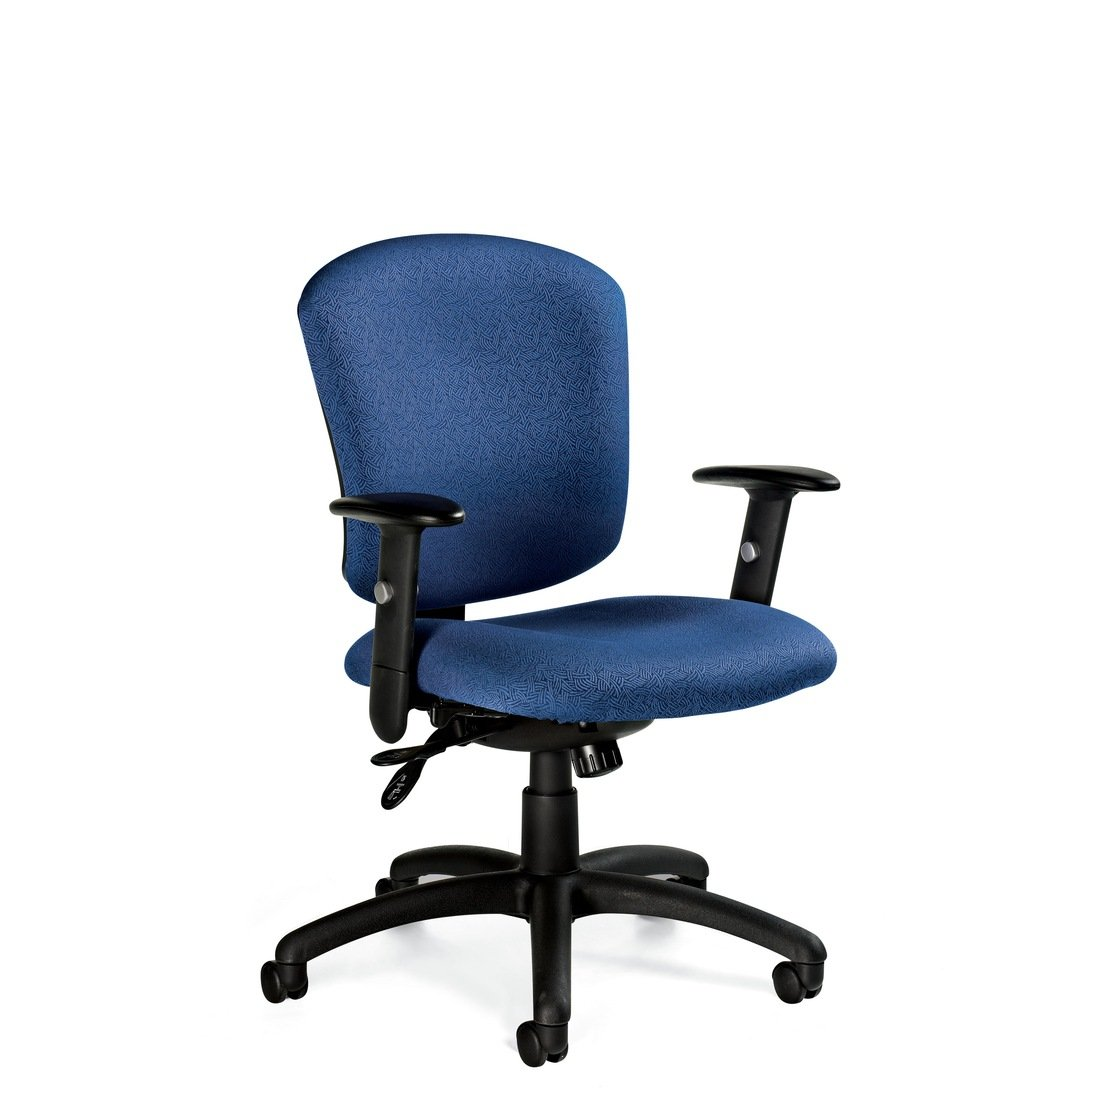 Supra X medium back multi-tilter chair, model 5336-1. This chair has been placed on a white background.